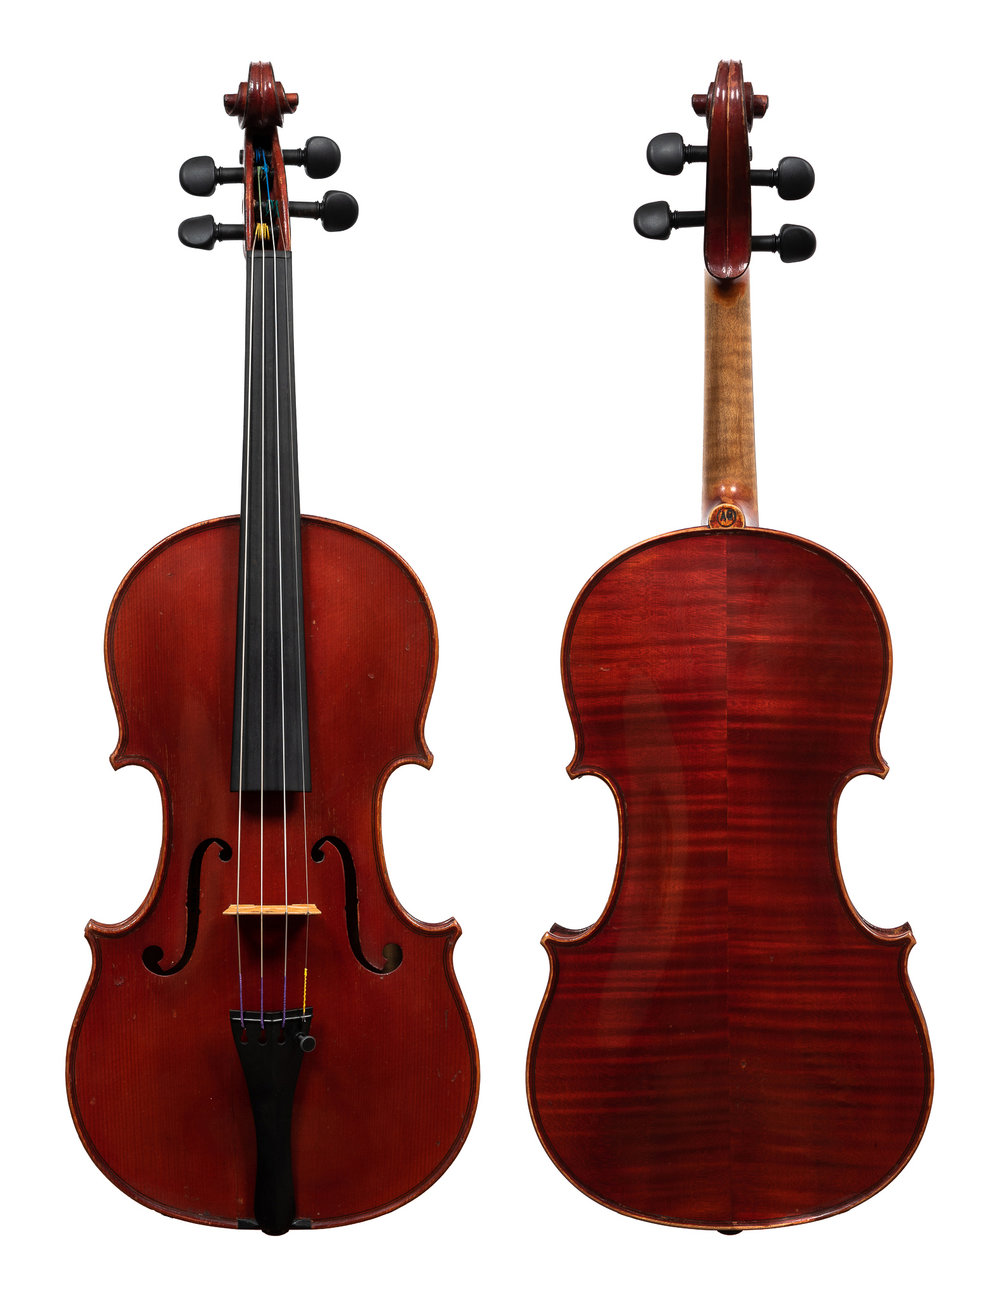 Copy of Copy of Acoulon & Blondelet Violin